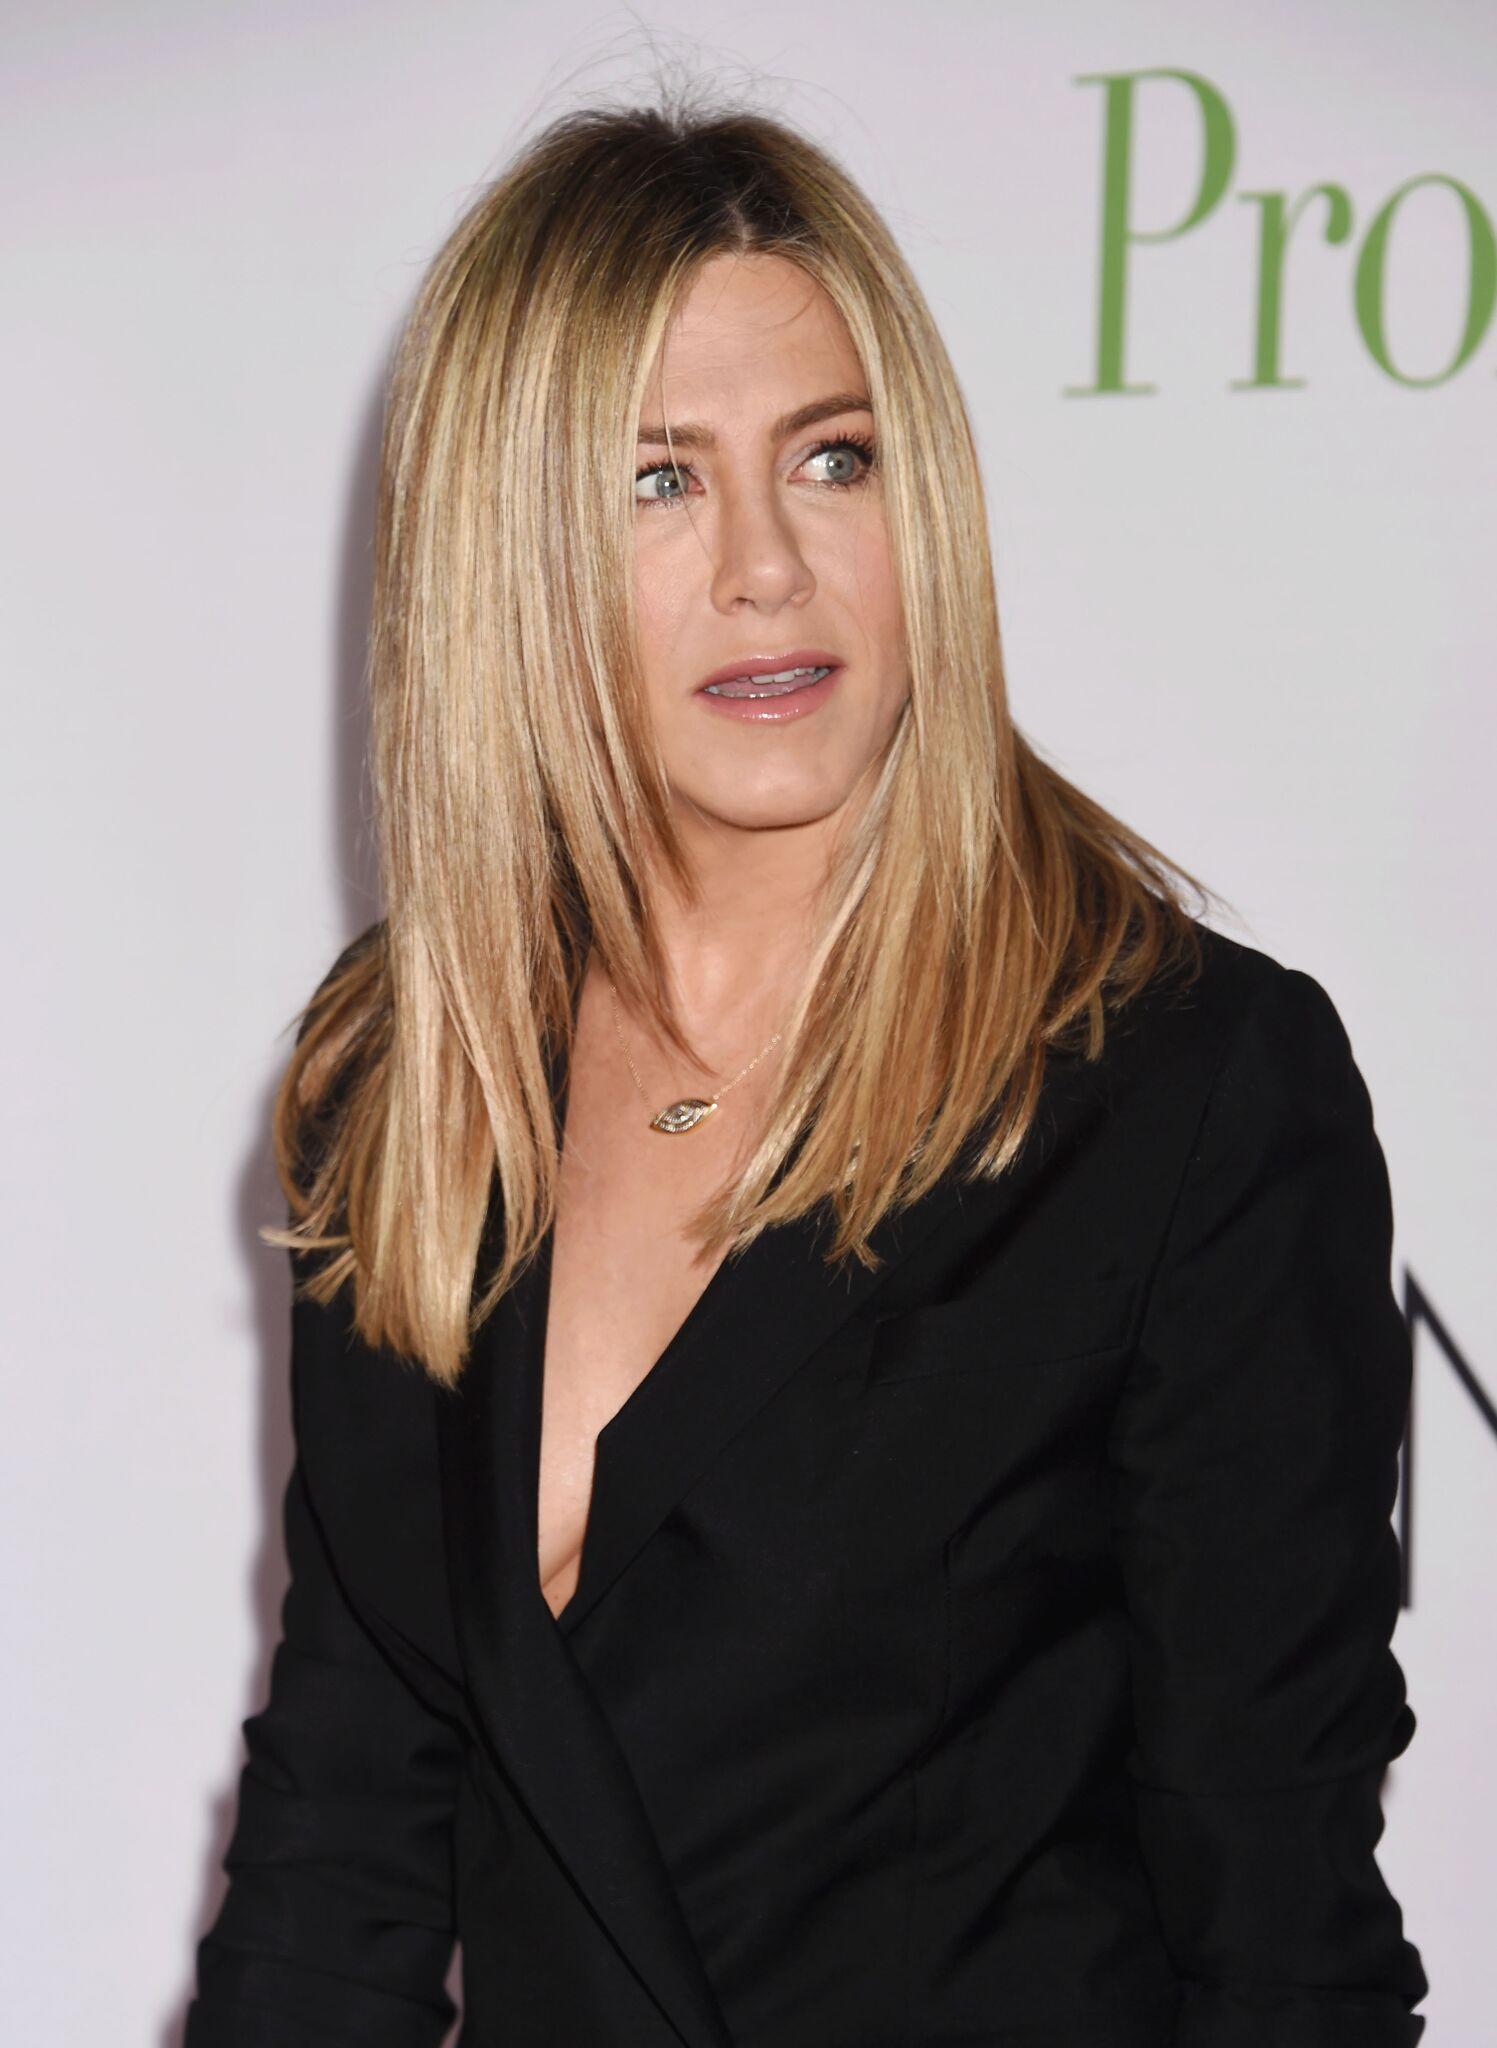 Jennifer Aniston attends the Open Roads World Premiere of 'Mother's Day' at the TCL Chinese Theatre IMAX | Getty Images